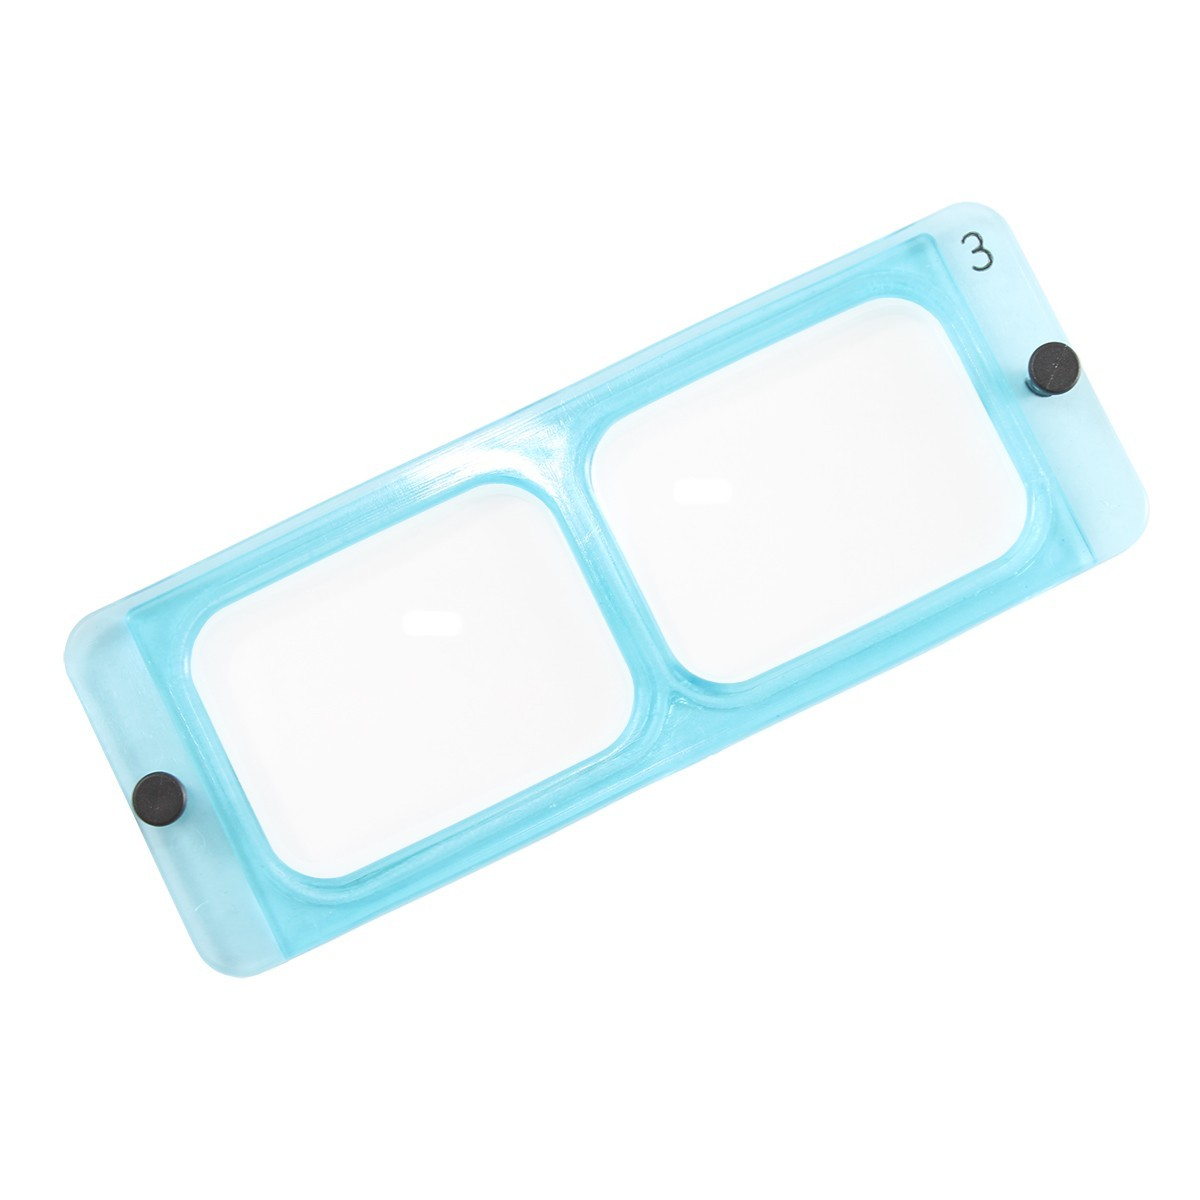 "Replacement OptiVISOR Lens Plate 1-3/4x 14"" Focal - DA-3 / LX3"